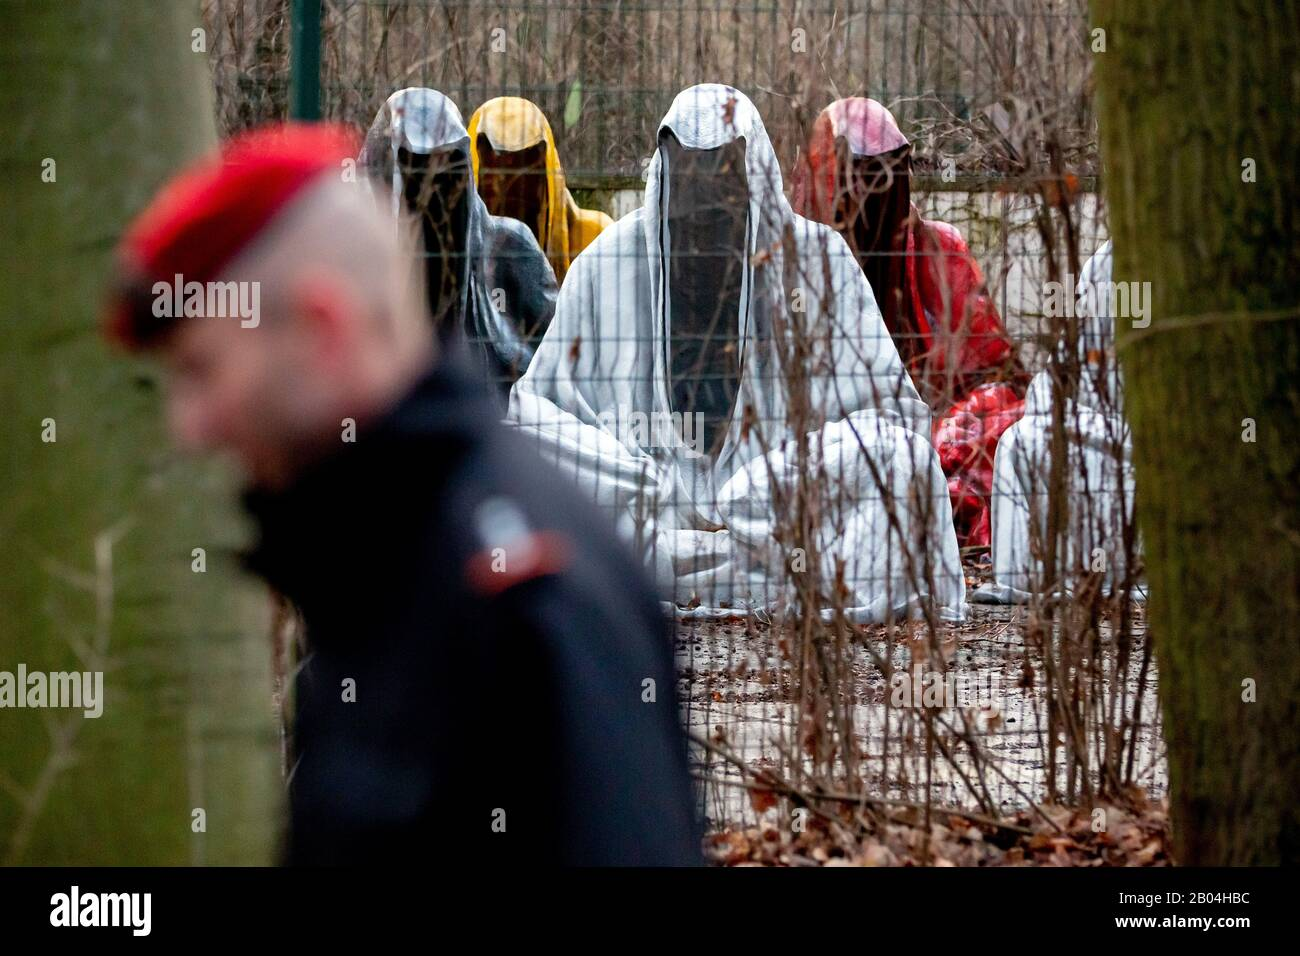 """Berlin, Germany. 04th Feb, 2020. """"The Guardians of Time"""" by the Austrian artist Manfred Kielnhofer are standing in the Tiergarten on a fenced area, which a man passes by. Credit: Christoph Soeder/dpa/Alamy Live News Stock Photo"""